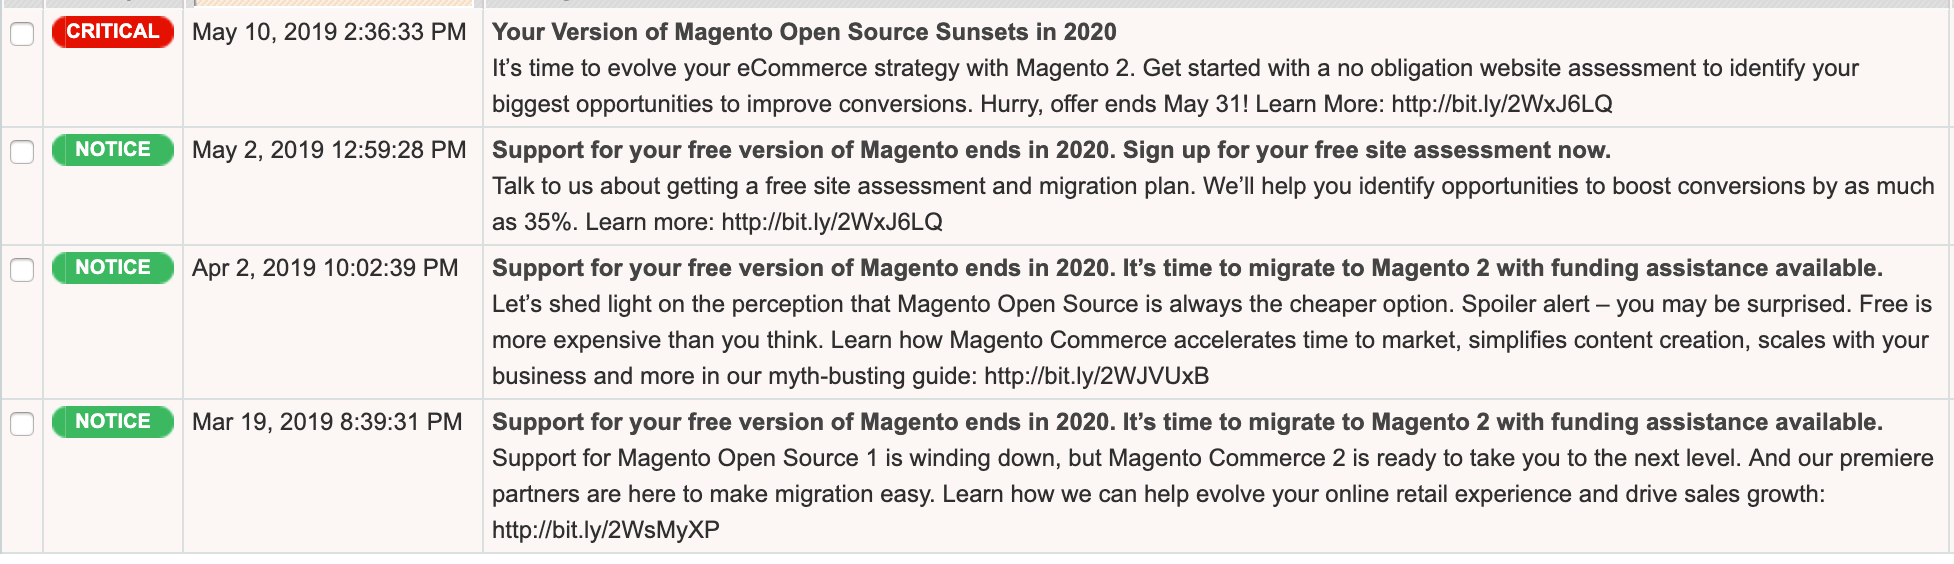 Magento 1 end of support period